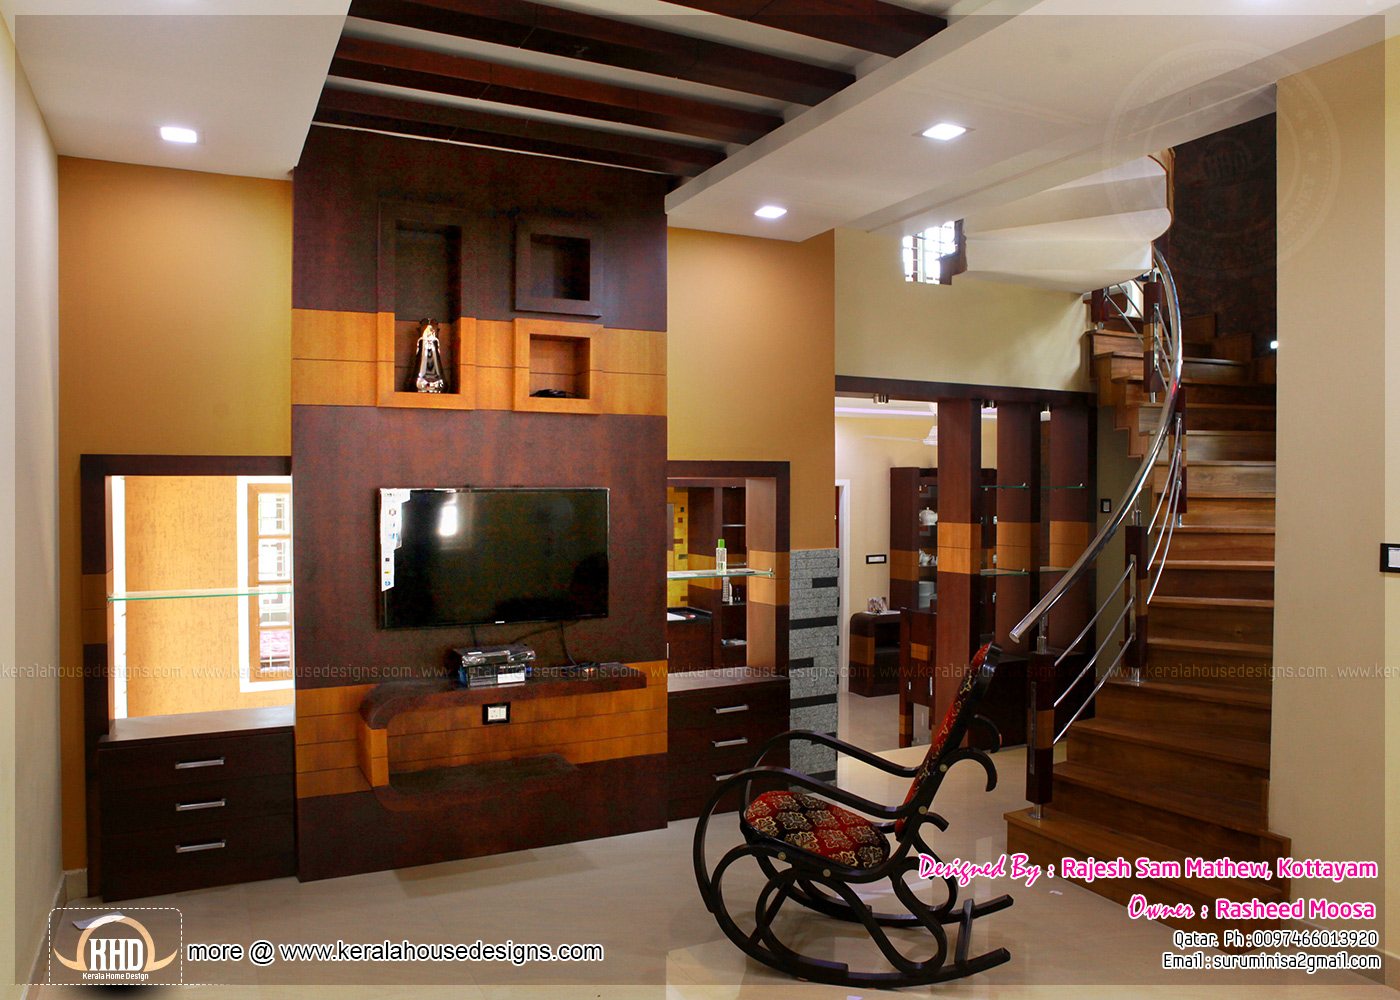 Kerala interior design with photos kerala home design House design inside